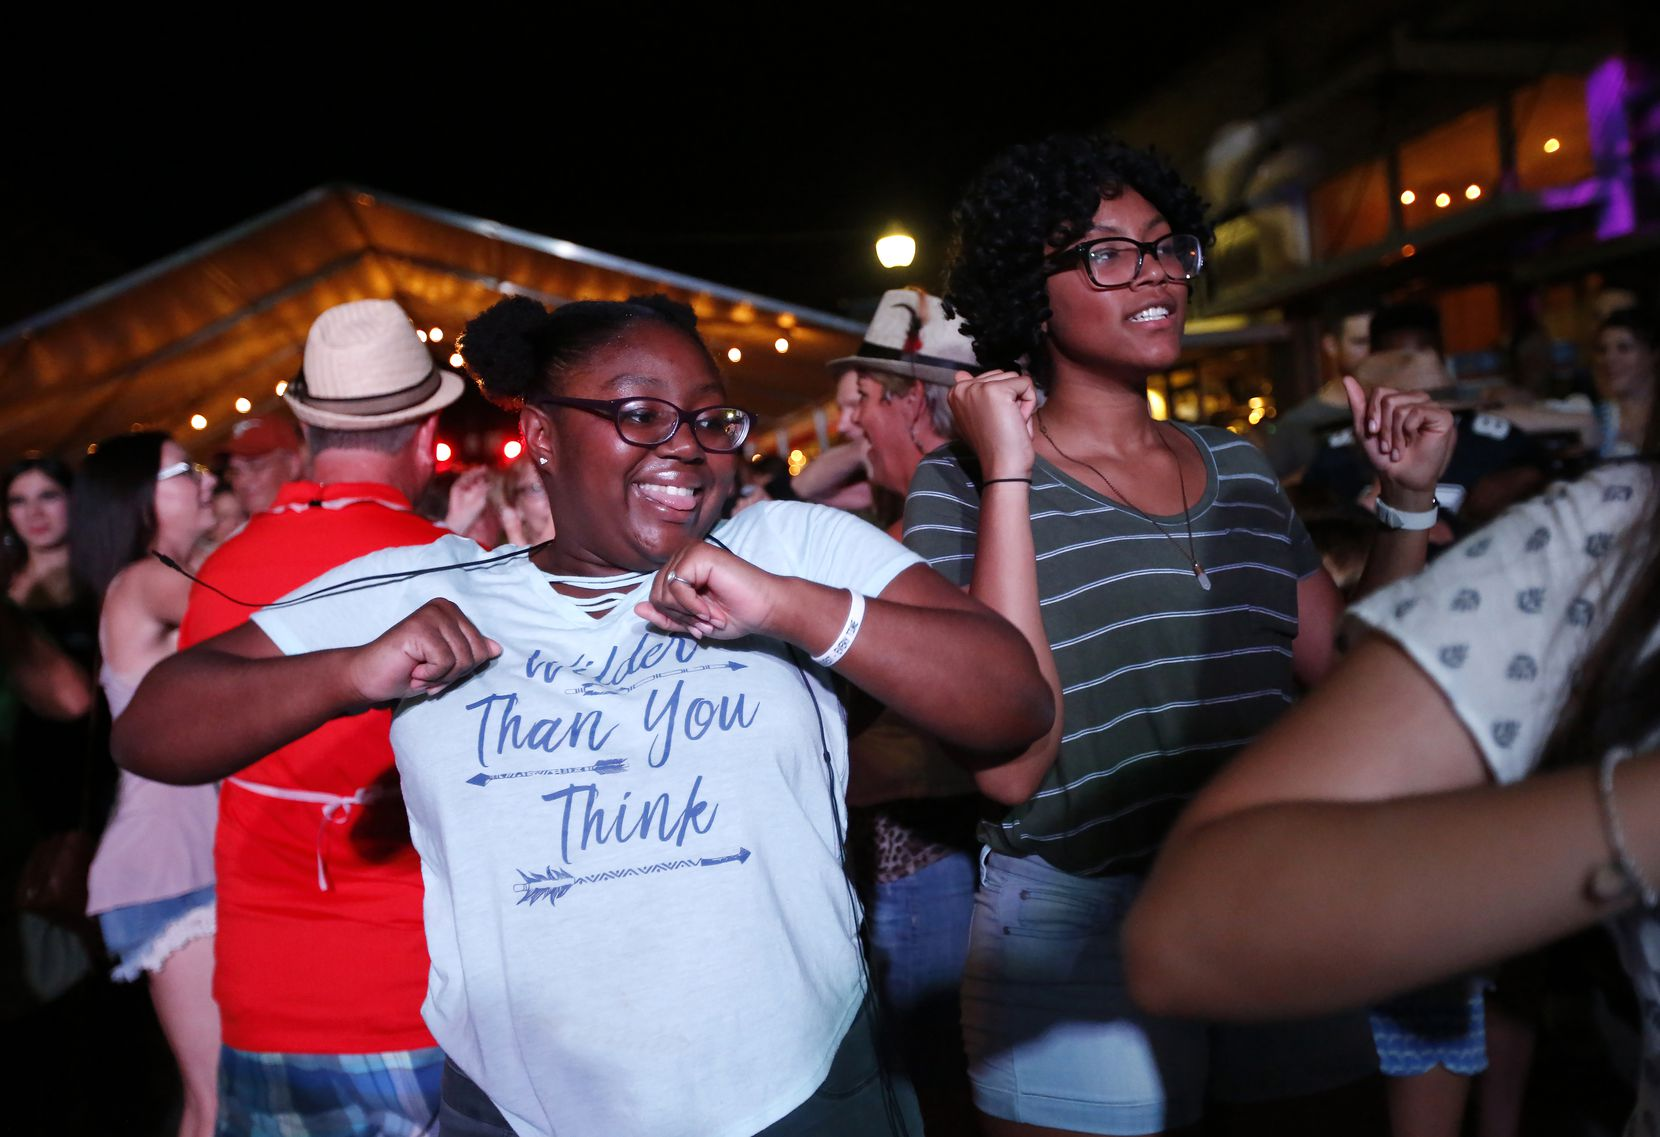 Kihya Houston, left, and Zoe Trask do the chicken dance during the 2017 McKinney Oktoberfest. The 2021 event will be held Sept. 24-26.